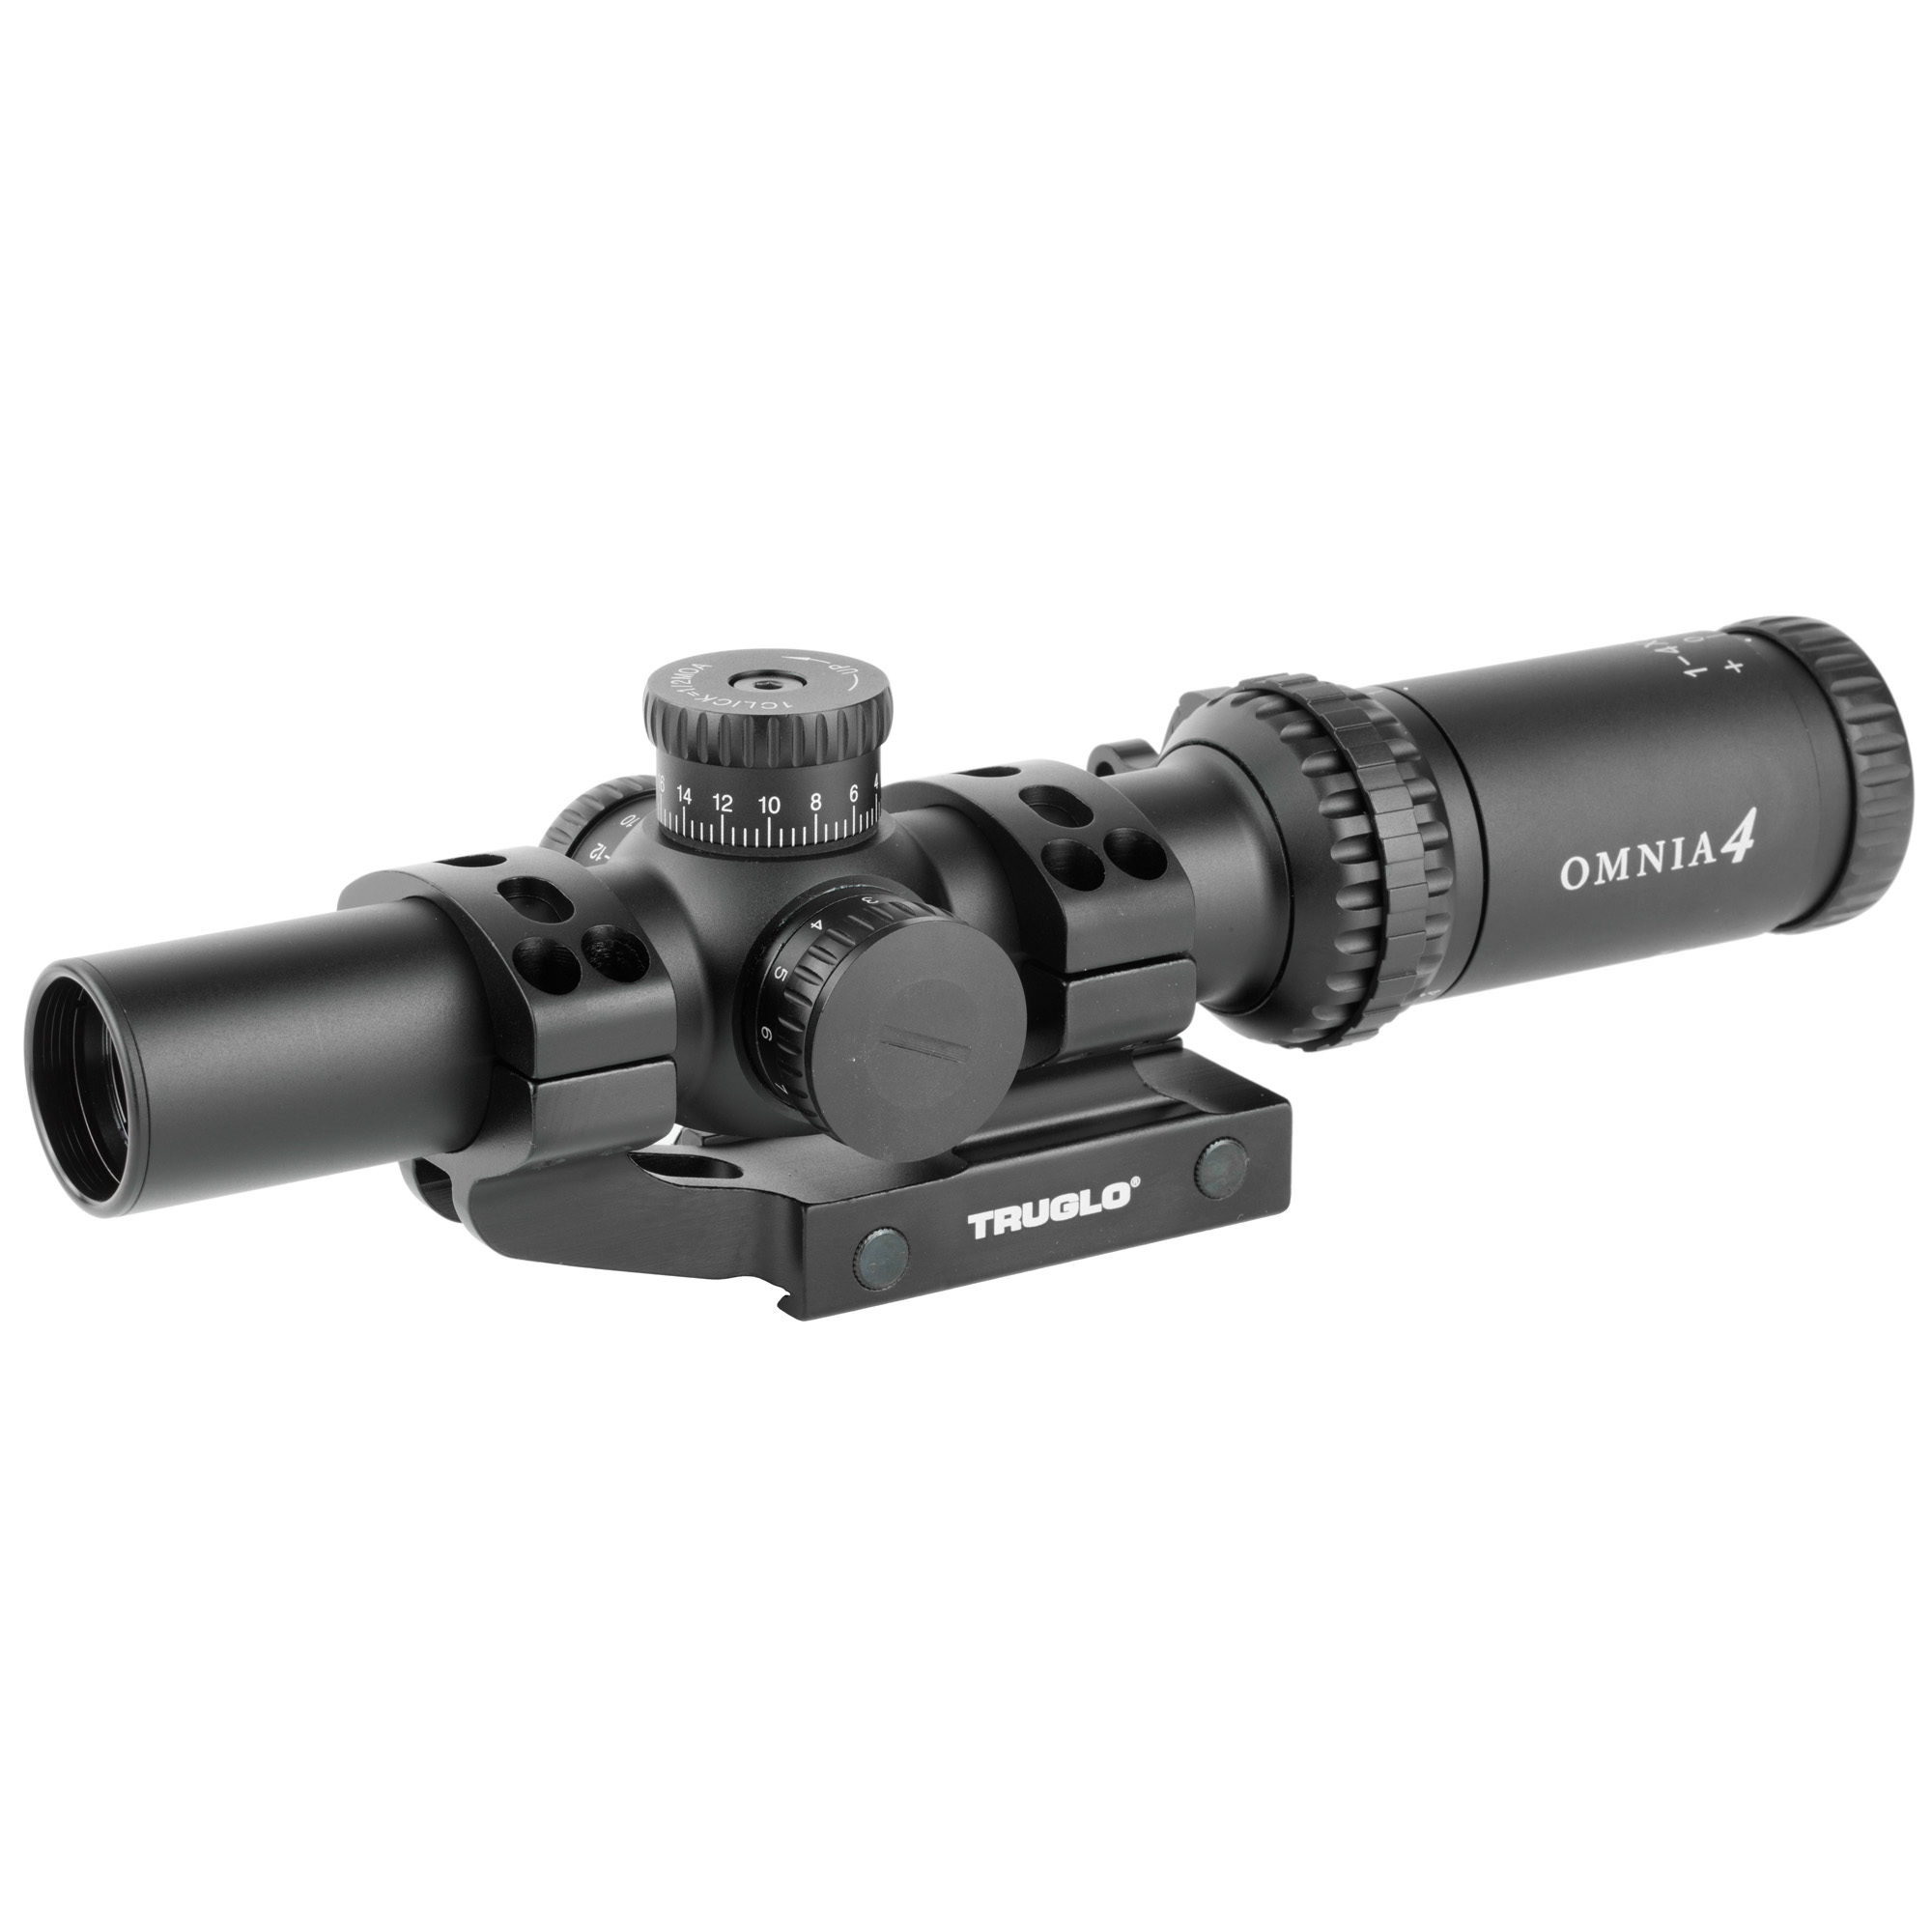 """Created with modern sporting rifles in mind"""" OMNIA precision riflescopes are designed with features and performance tailored to the modern rifleman. The 1-4x and 1-6x magnification ranges pair perfectly with a powerful illuminated reticle that offers the best of both worlds for near-field CQB shooting and long distance precision-fulfilling the entire range of tactical carbines. In the OMINA lineup"""" powerful accessories come standard"""" including a quick-zoom lever and the purpose-built APTUS M-1 tactical 30mm one-piece mount."""